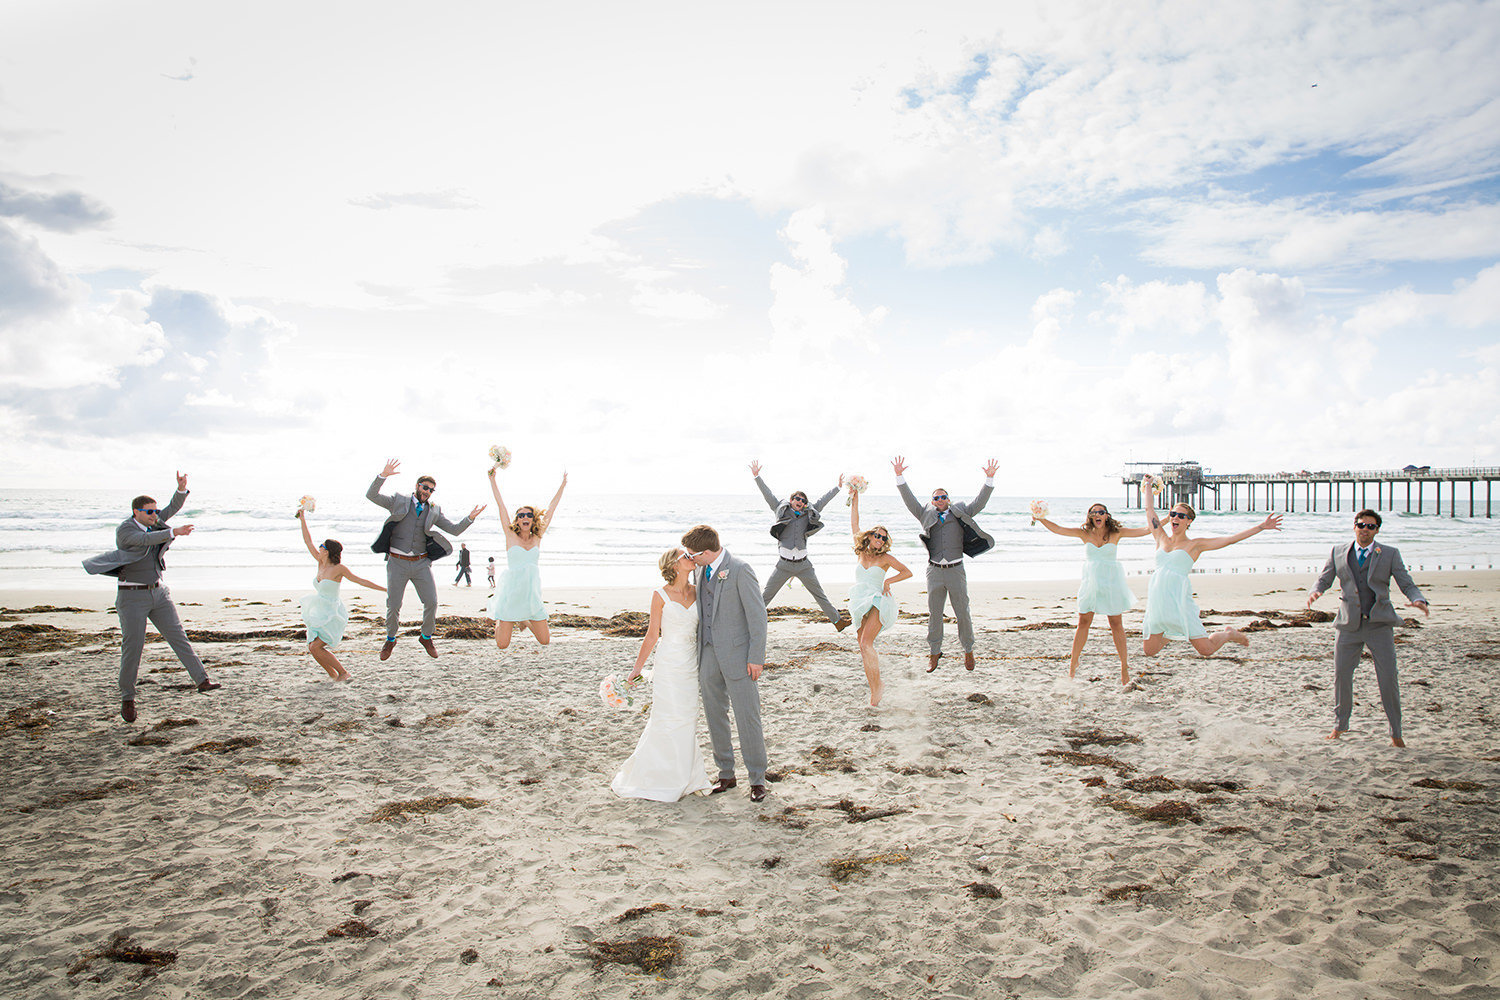 wedding party jumping in the air